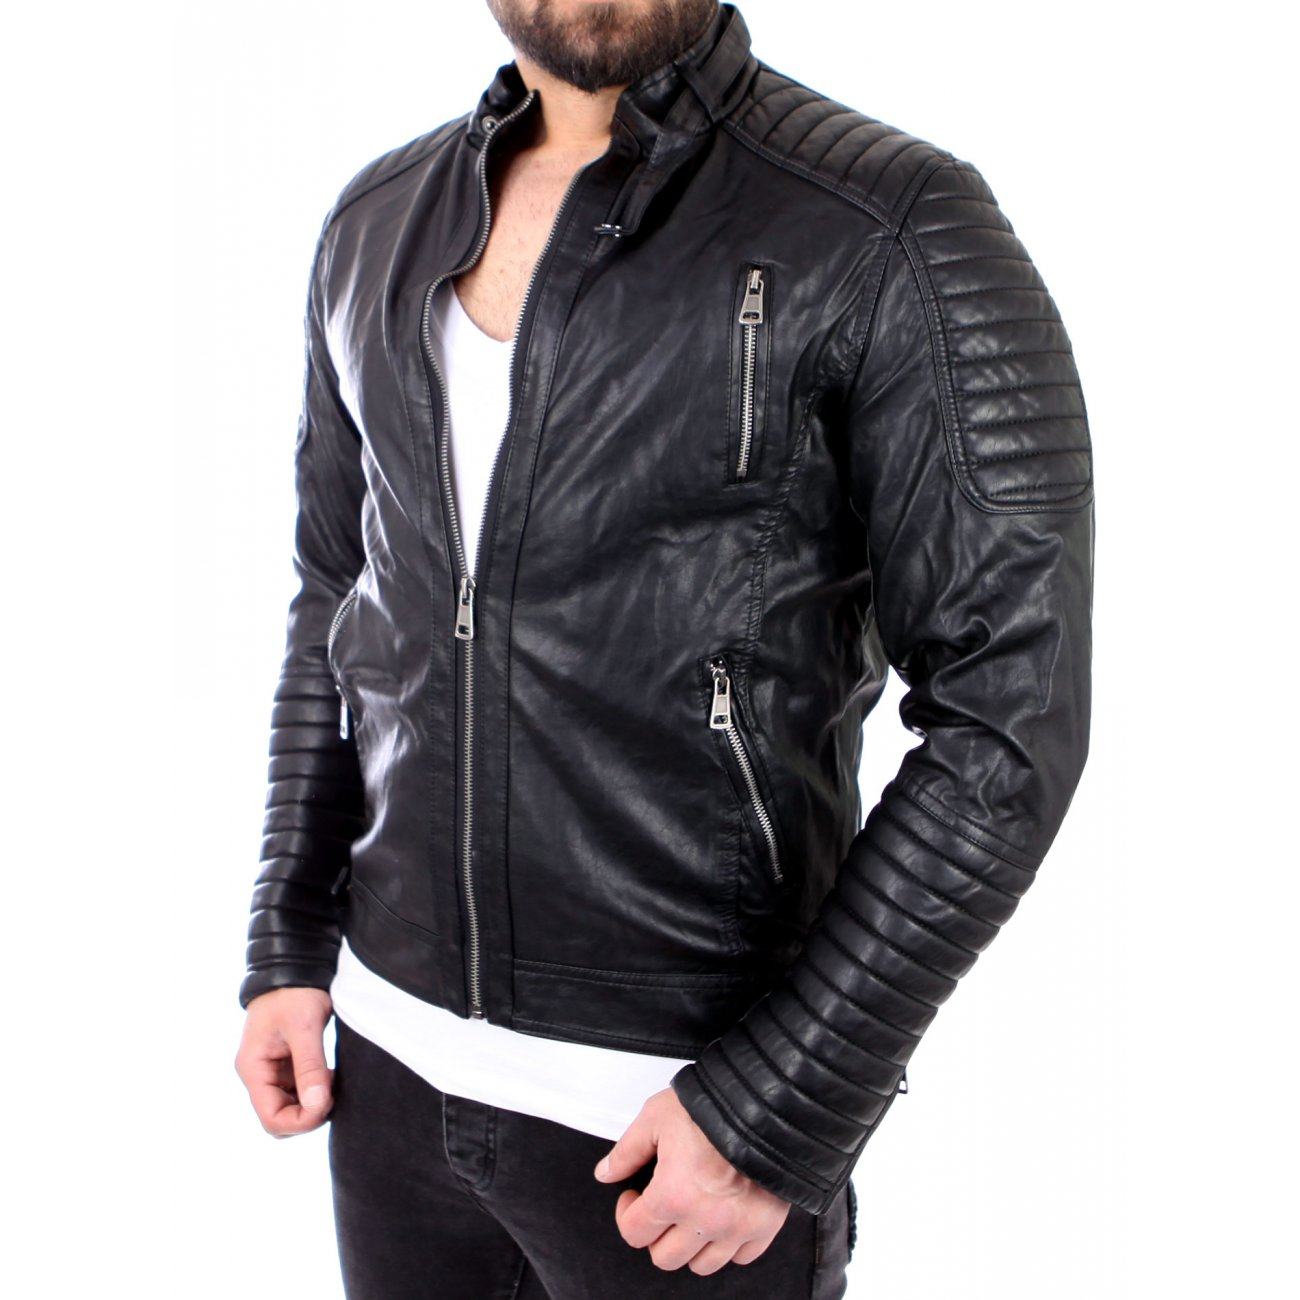 reslad lederjacke herren zipped biker look kunstleder jacke rs 543 sc. Black Bedroom Furniture Sets. Home Design Ideas